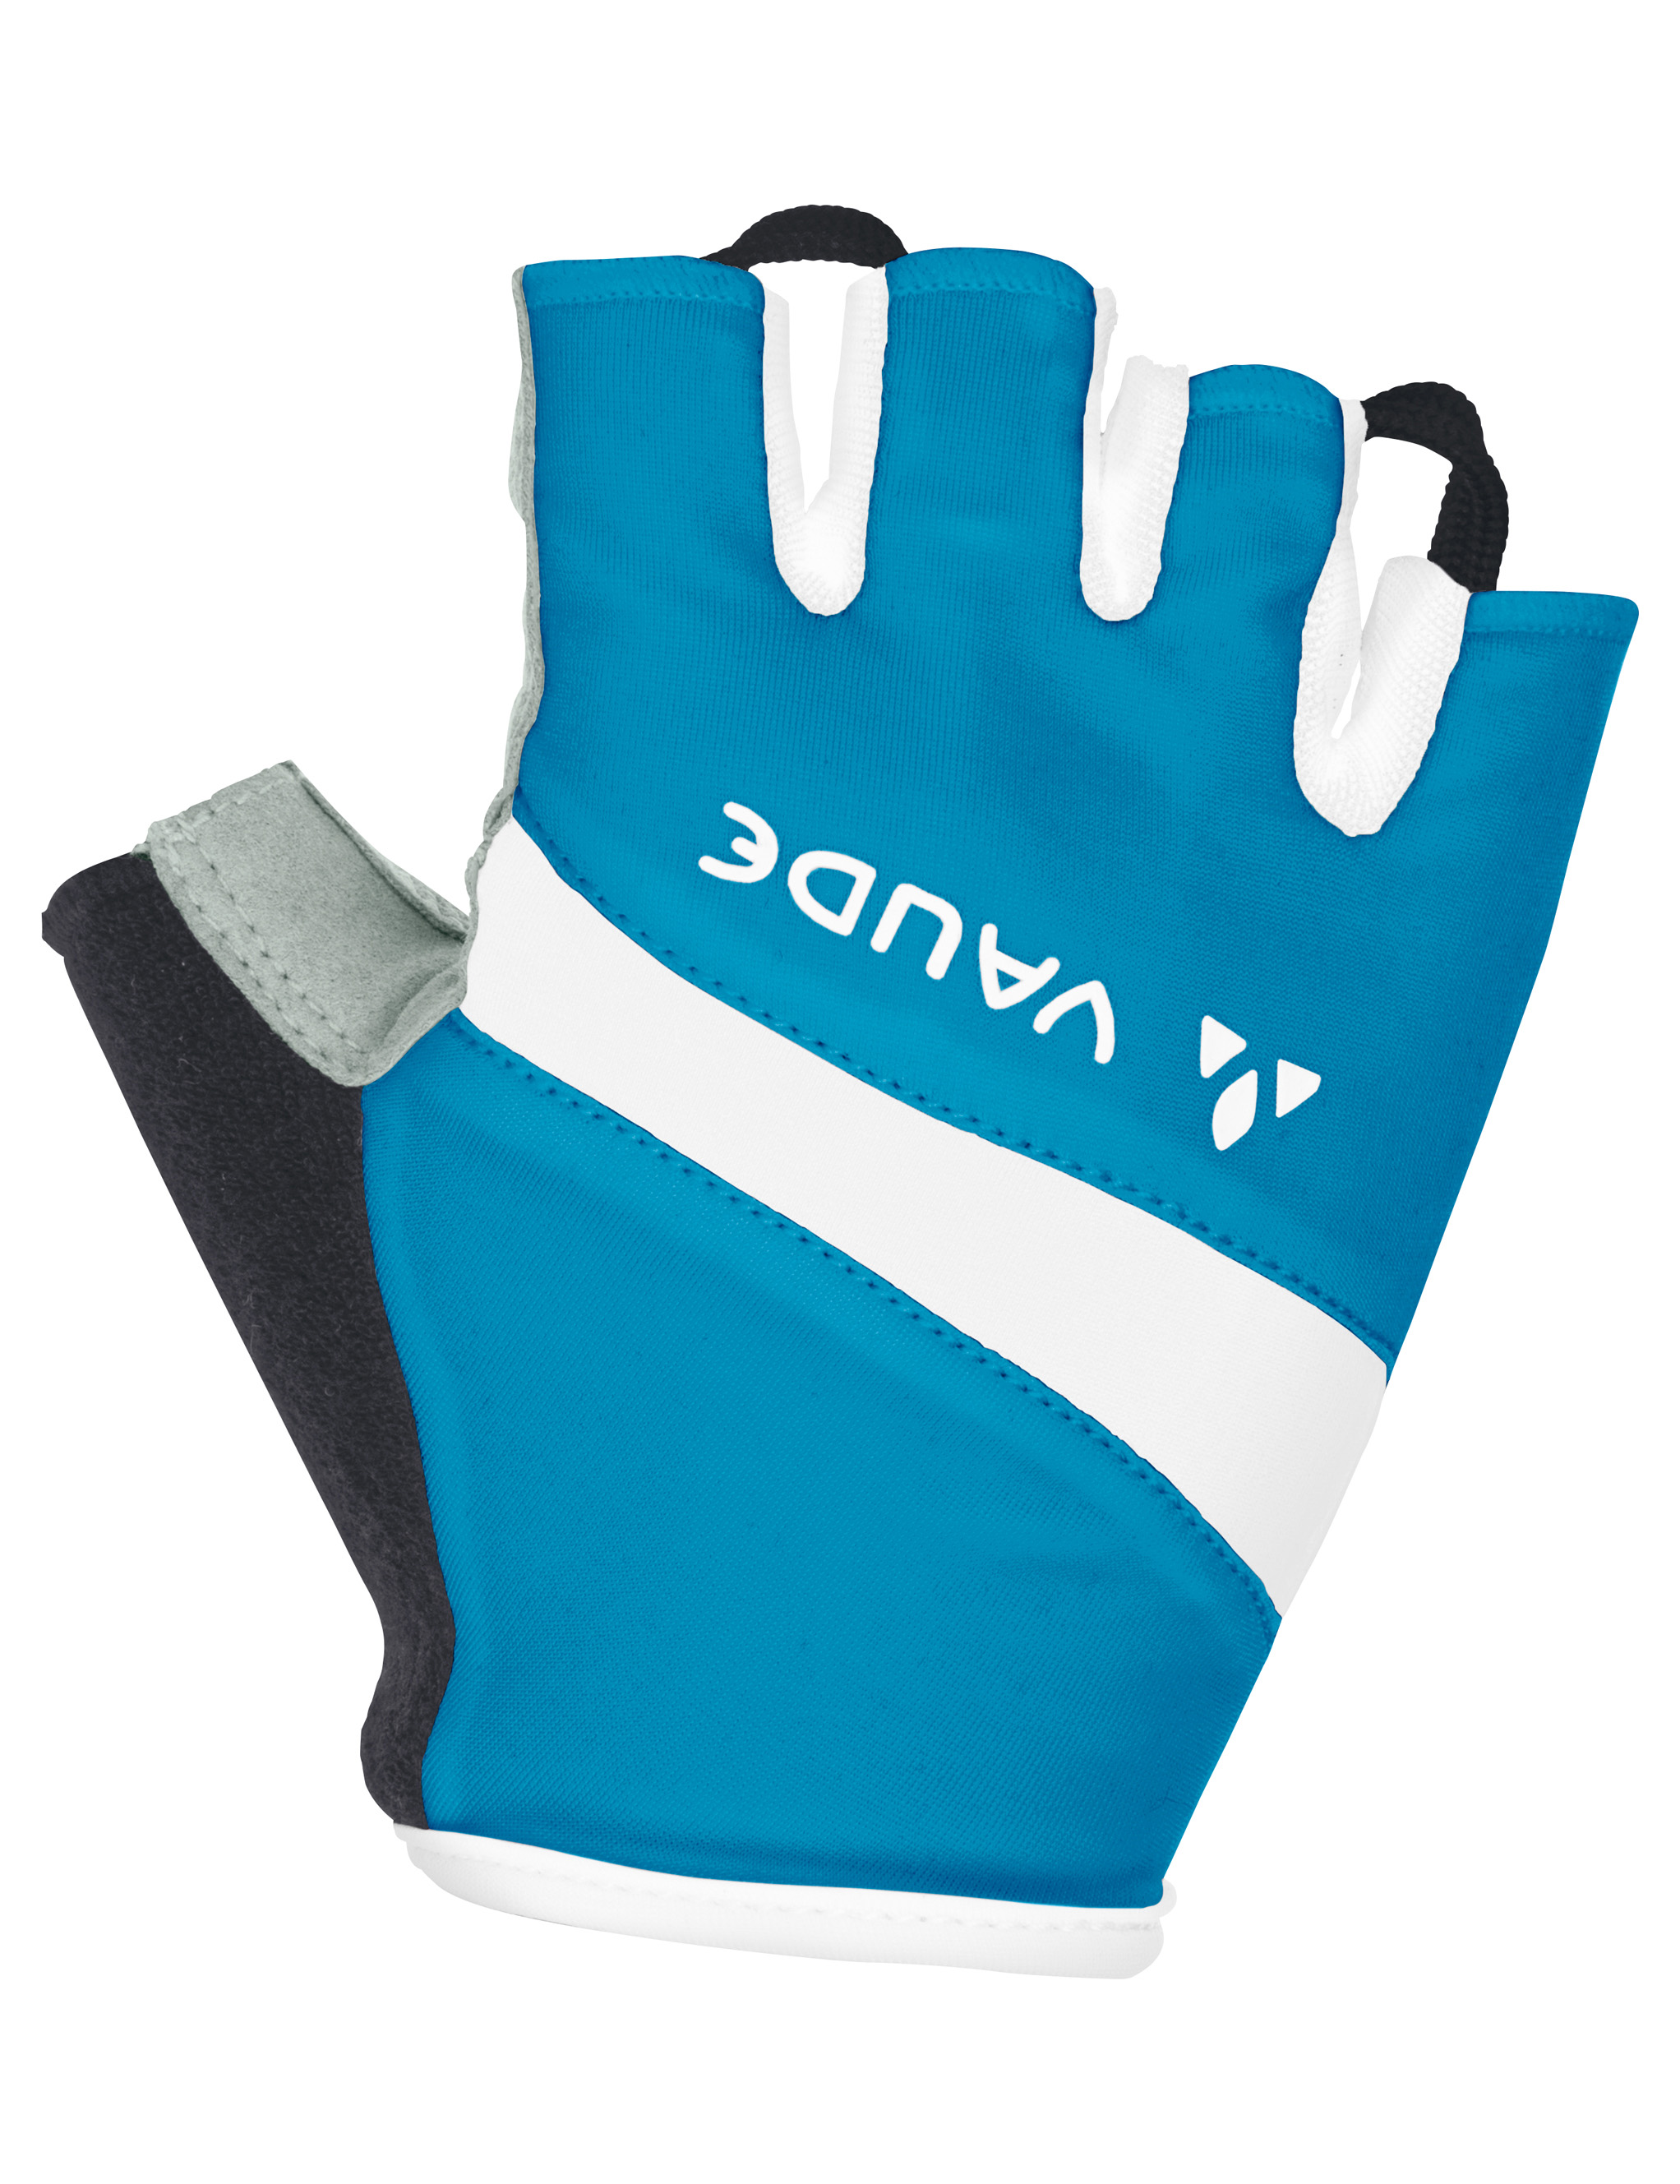 VAUDE Women´s Active Gloves spring blue Größe 7 - schneider-sports